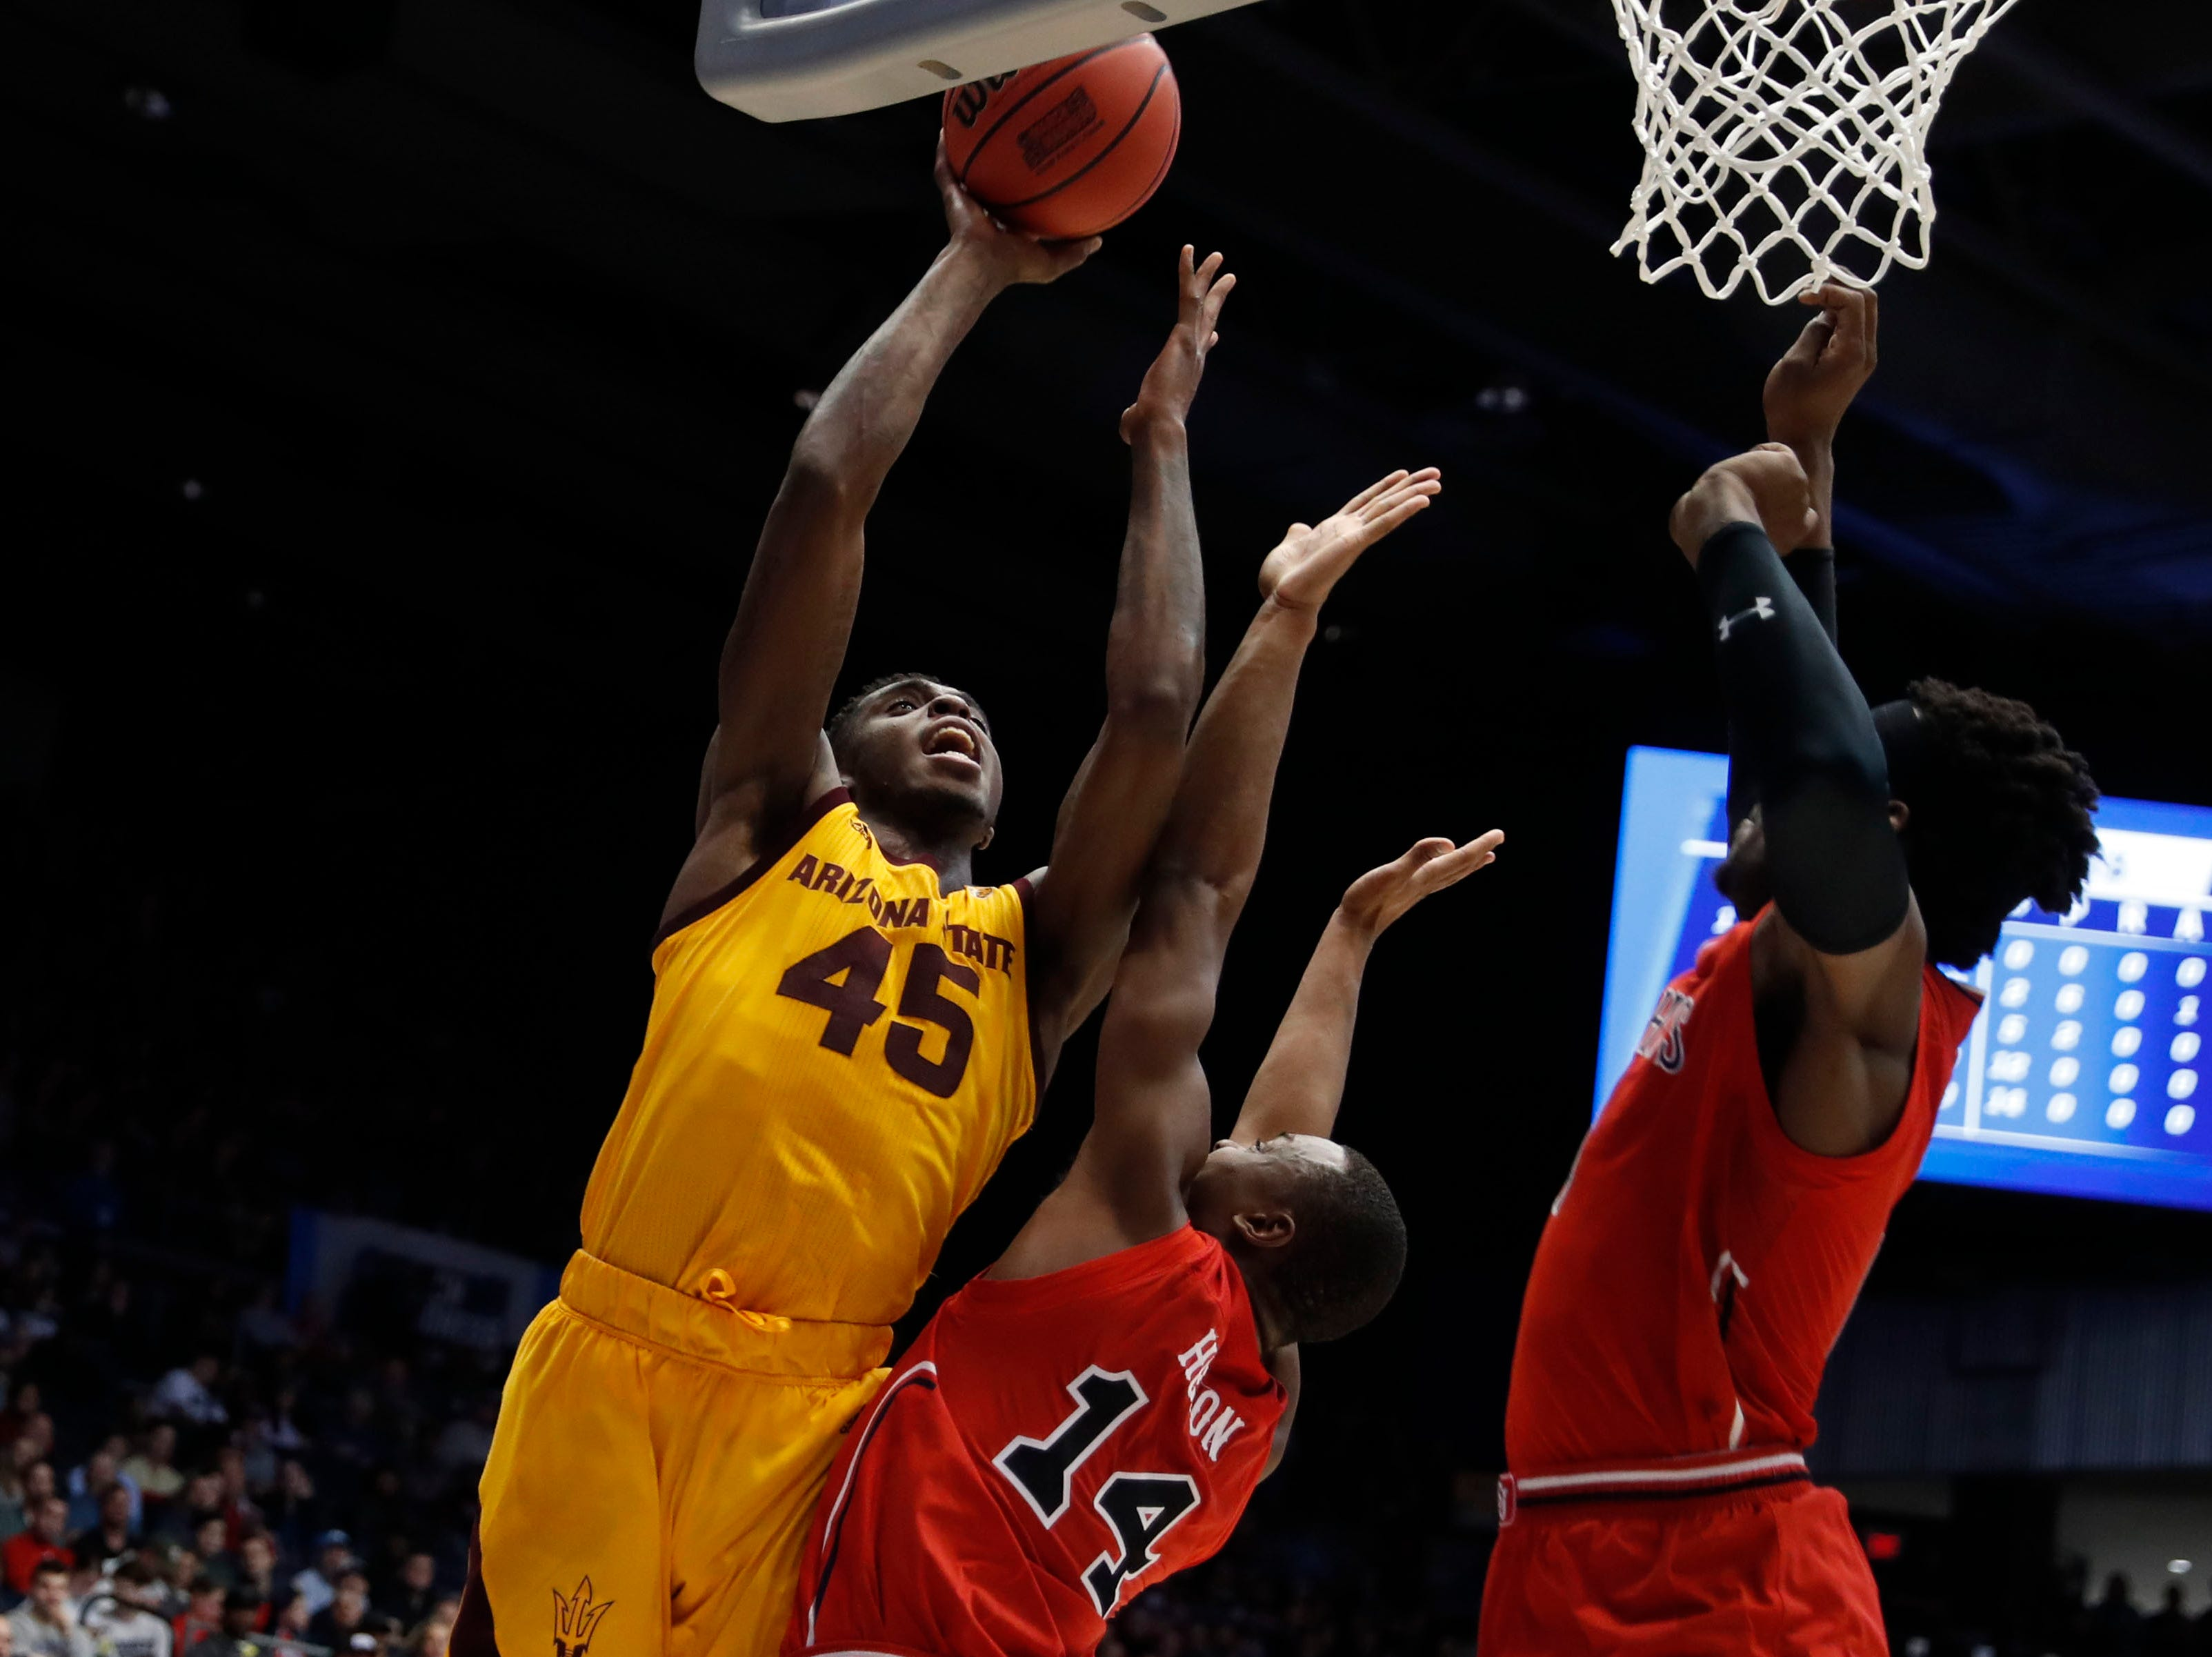 Arizona State Sun Devils forward Zylan Cheatham (45) goes to the basket defended by St. John's Red Storm guard Mustapha Heron (14).